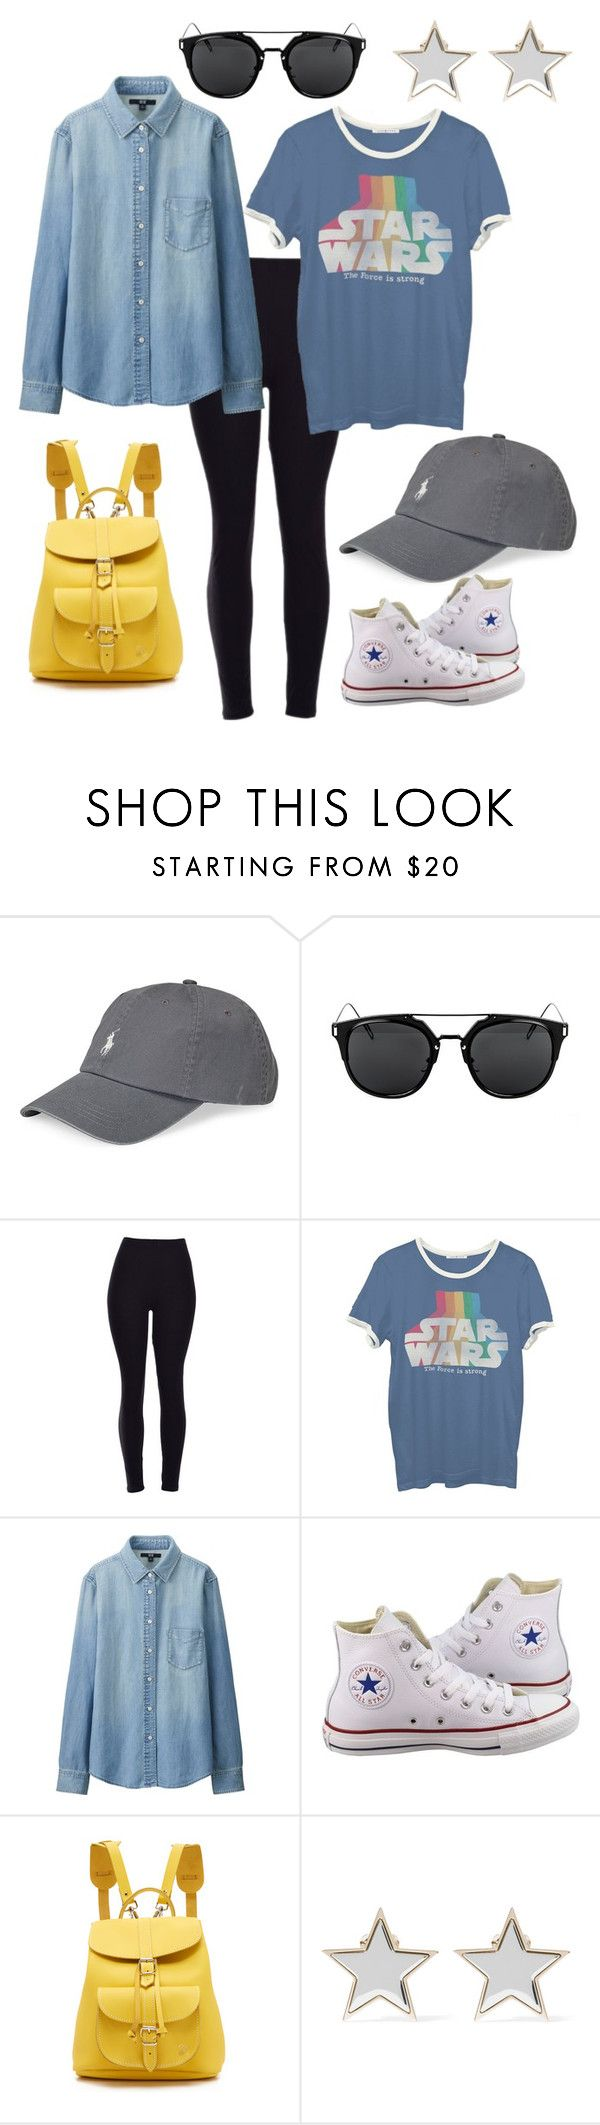 """""""Untitled #45"""" by leahpatricia ❤ liked on Polyvore featuring Polo Ralph Lauren, Junk Food Clothing, Uniqlo, Converse, Grafea and Givenchy"""